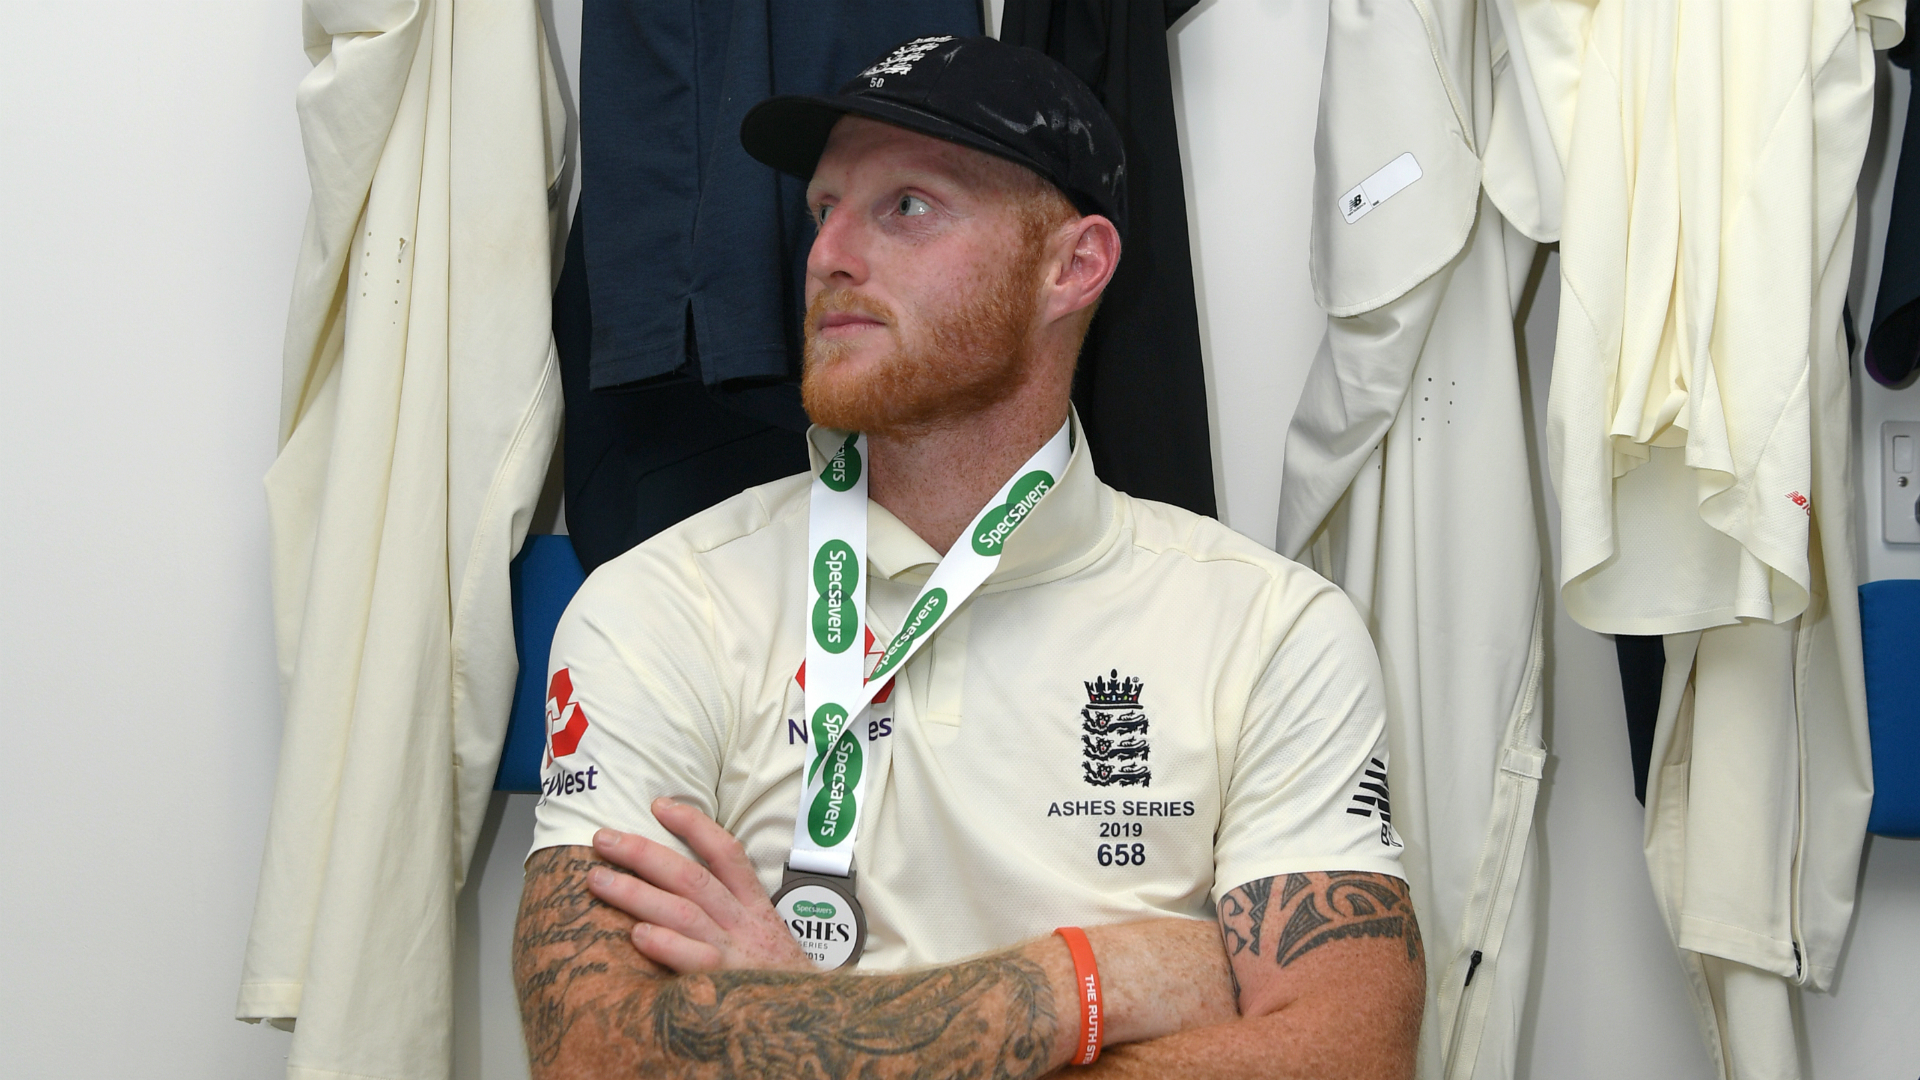 Ashes 2019: Stokes knock fuelled by 'knock-off' Nando's and chocolate bars